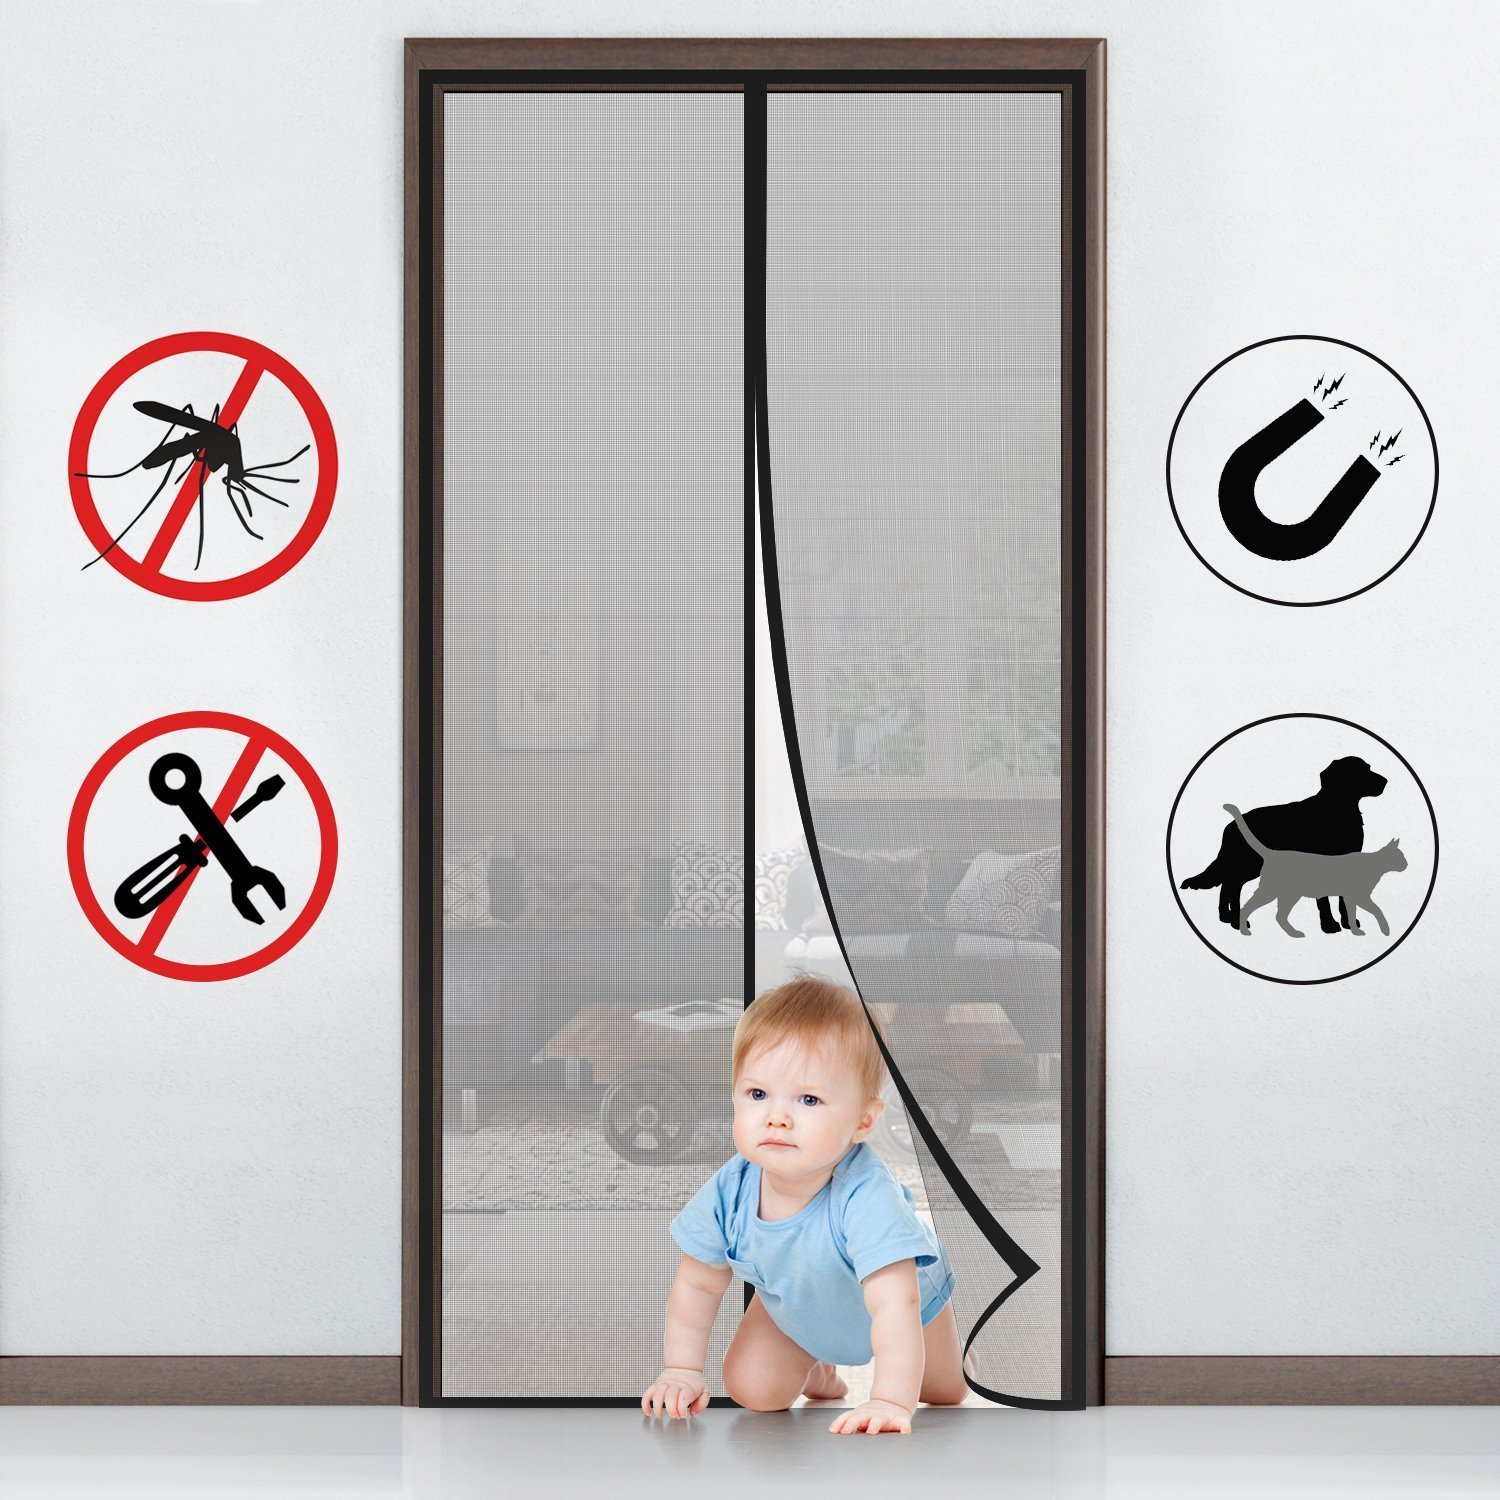 FabricMCC Magnetic Screen Door, Heavy Duty Instant Mesh Curtain Screen Door Protector with Full Frame Magic Stickers Fits Doors up to 36''x82'' Max by FabricMCC